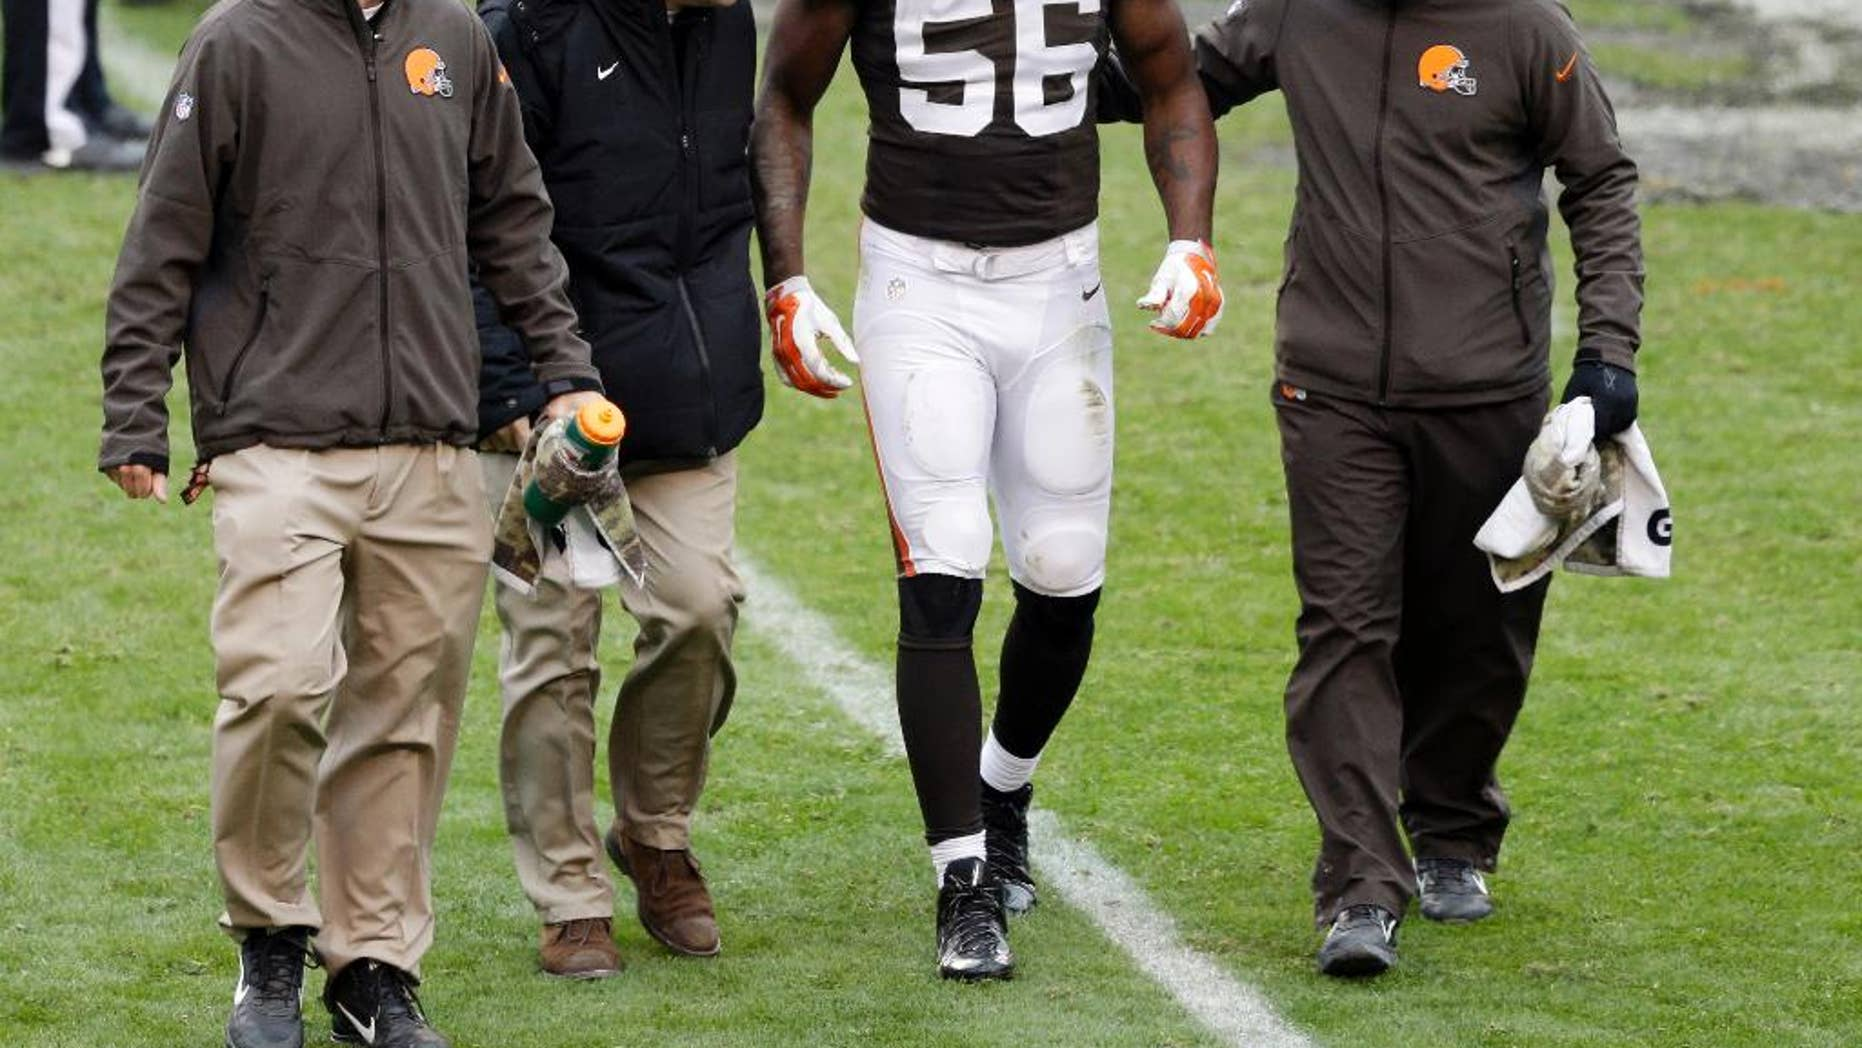 Cleveland Browns inside linebacker Karlos Dansby (56) is helped off the field after an injury in the second quarter of an NFL football game against the Houston Texans, Sunday, Nov. 16, 2014, in Cleveland. (AP Photo/Tony Dejak)